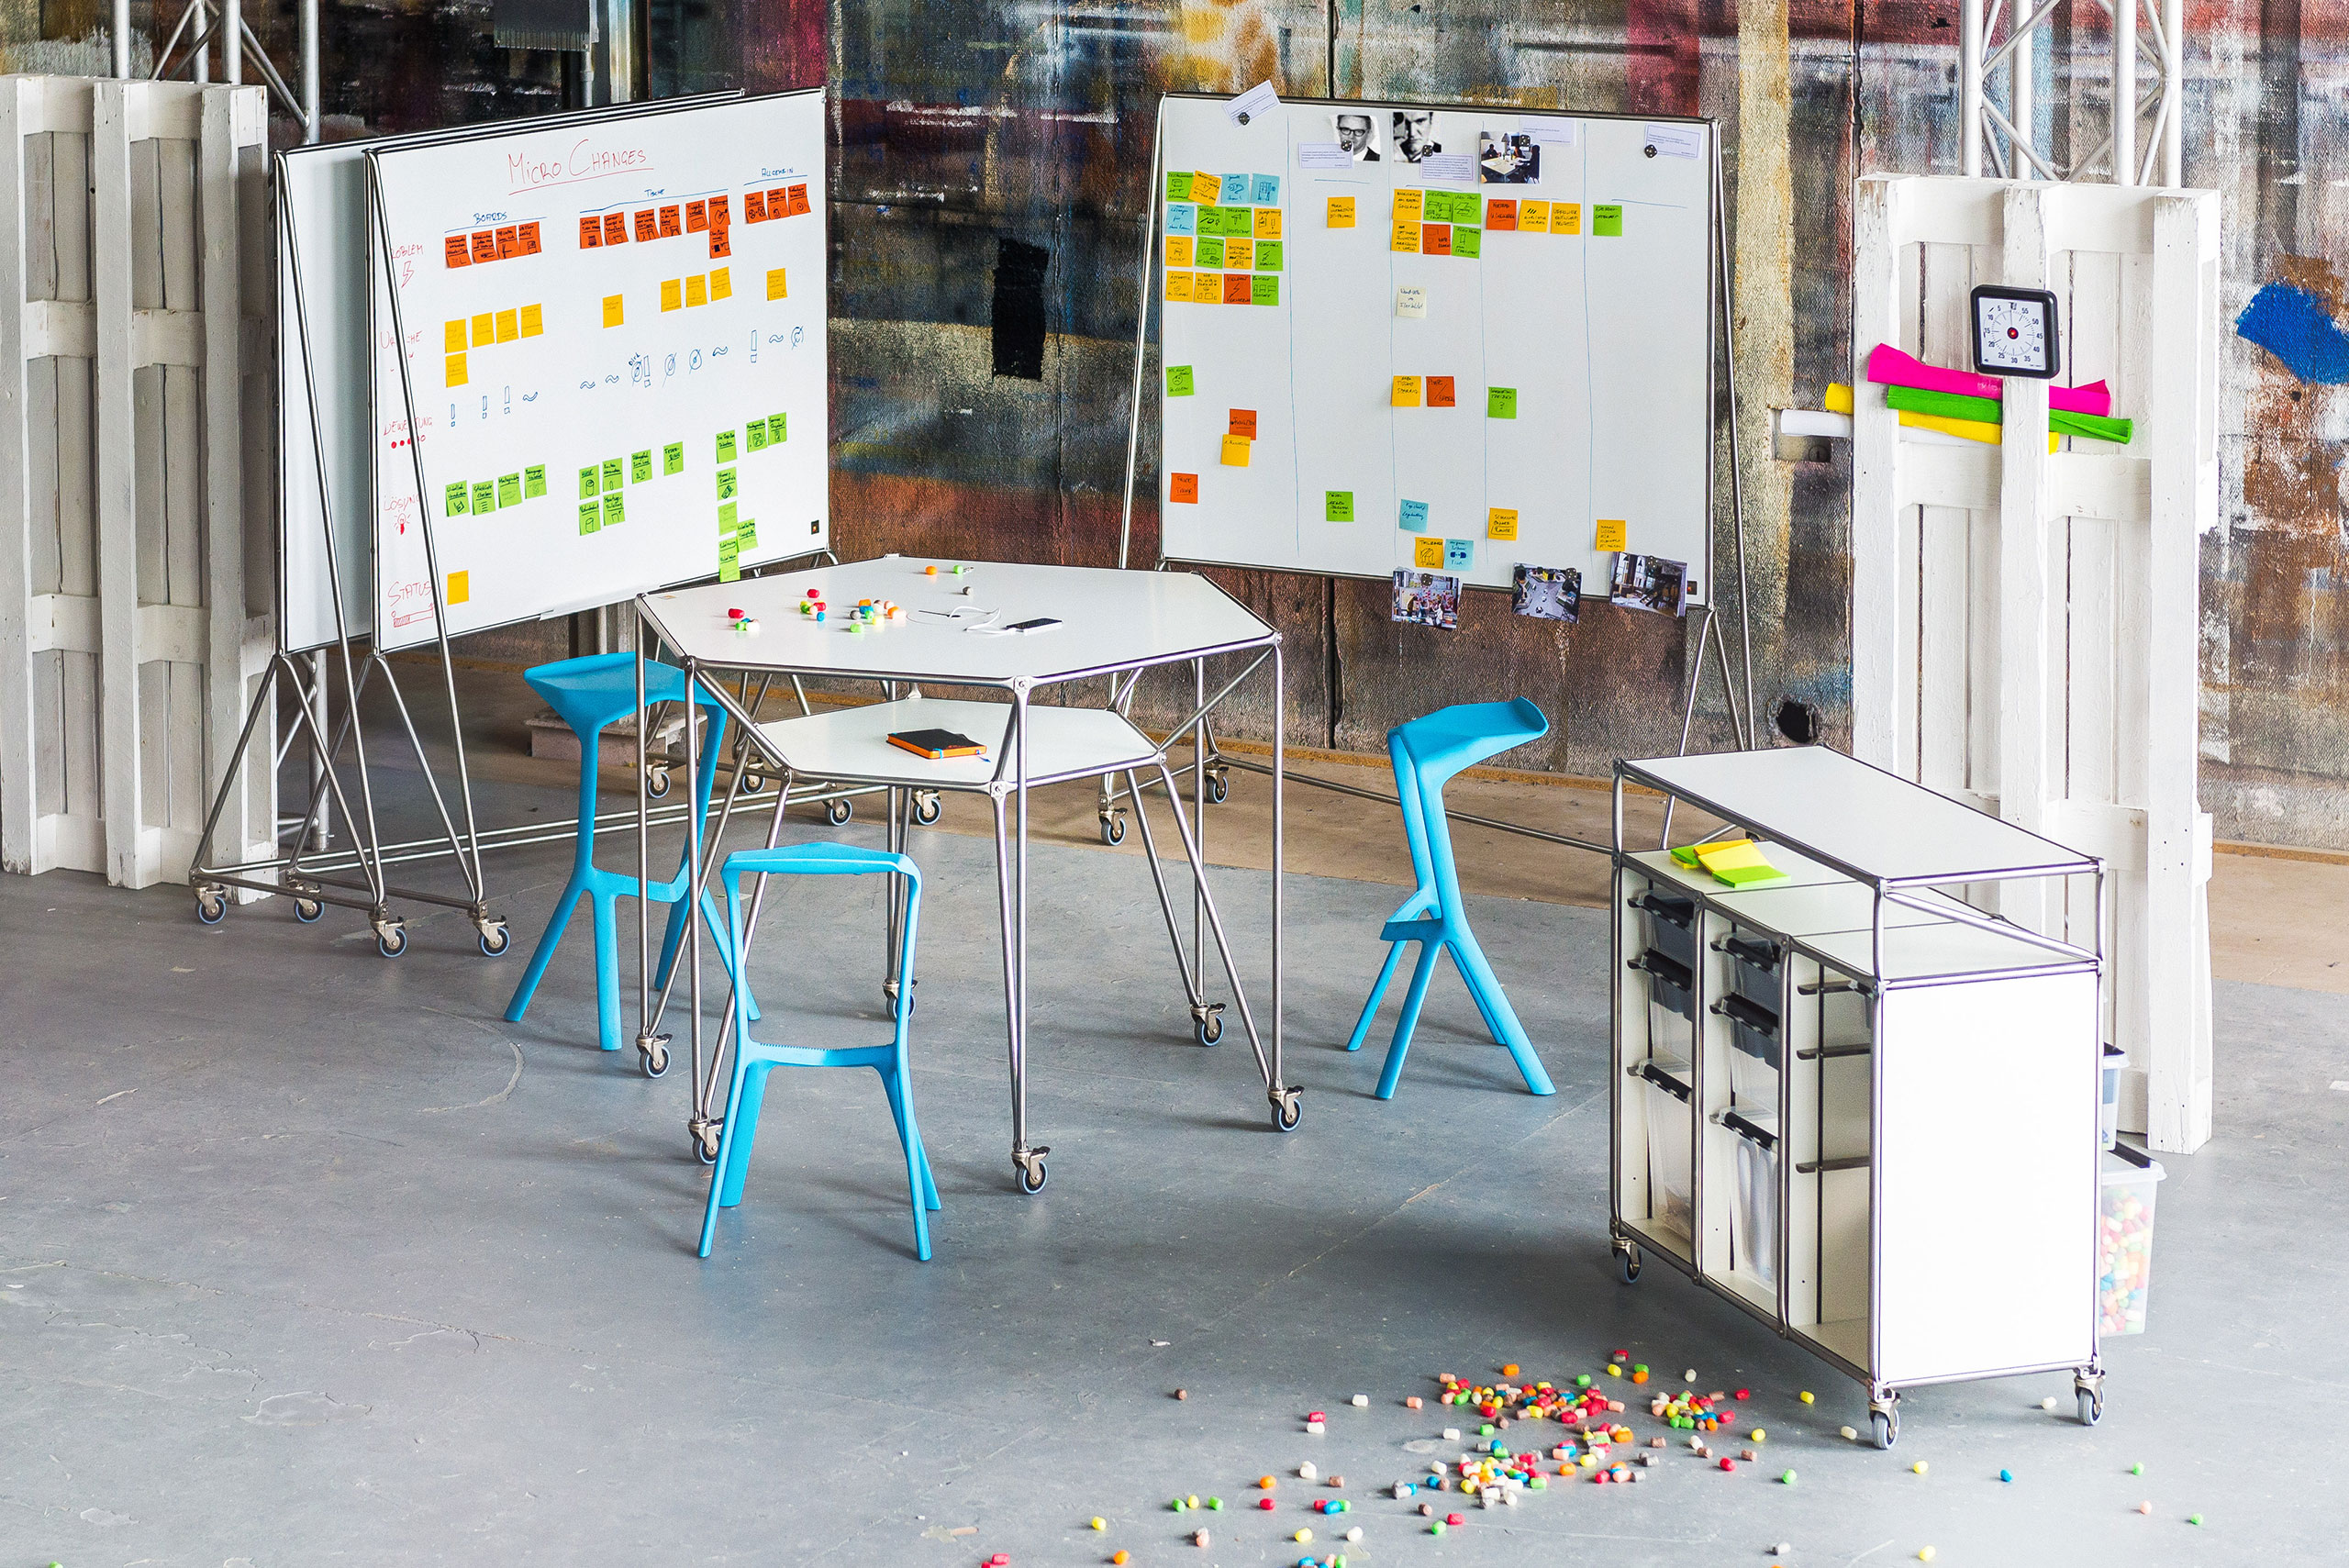 User story map on whiteboards